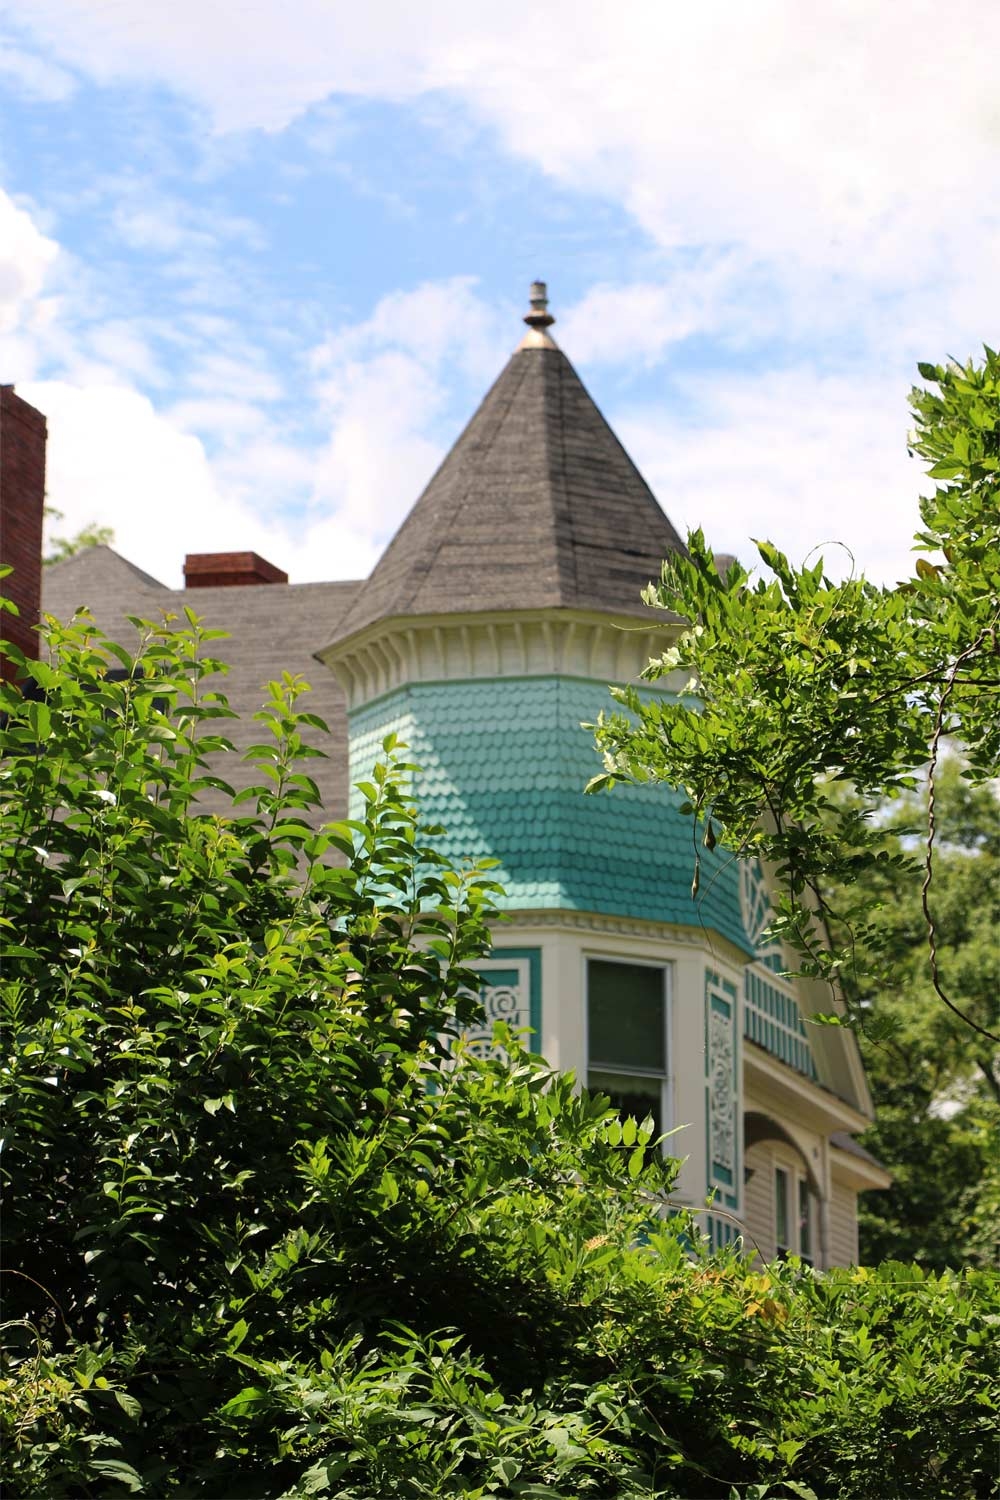 Turret on Brock Brown Hall